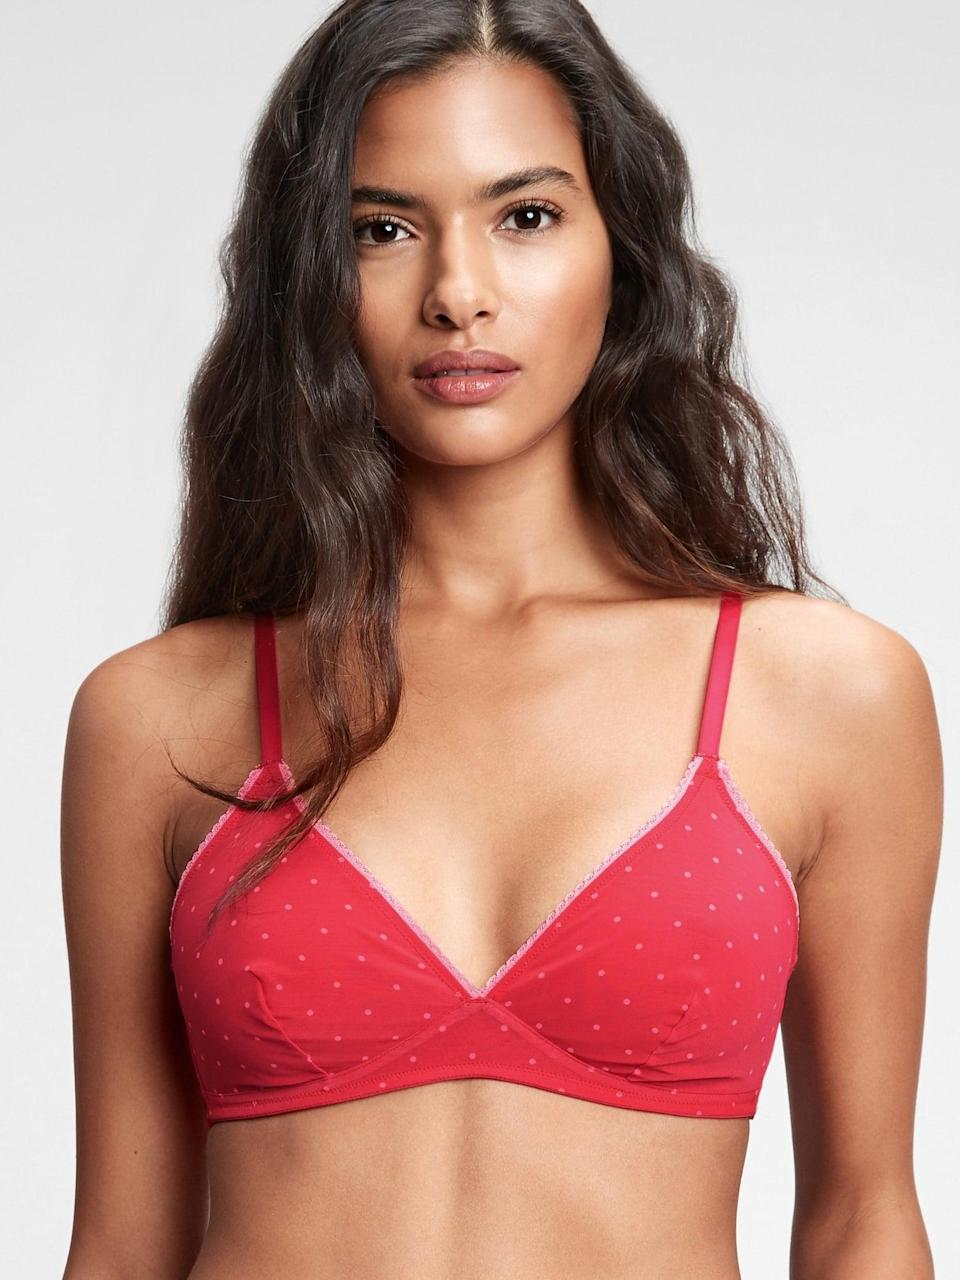 <p>This red-and-pink polka-dot <span>Gap Triangle Mesh Bralette</span> ($27, originally $30) is super cute and dainty.</p>